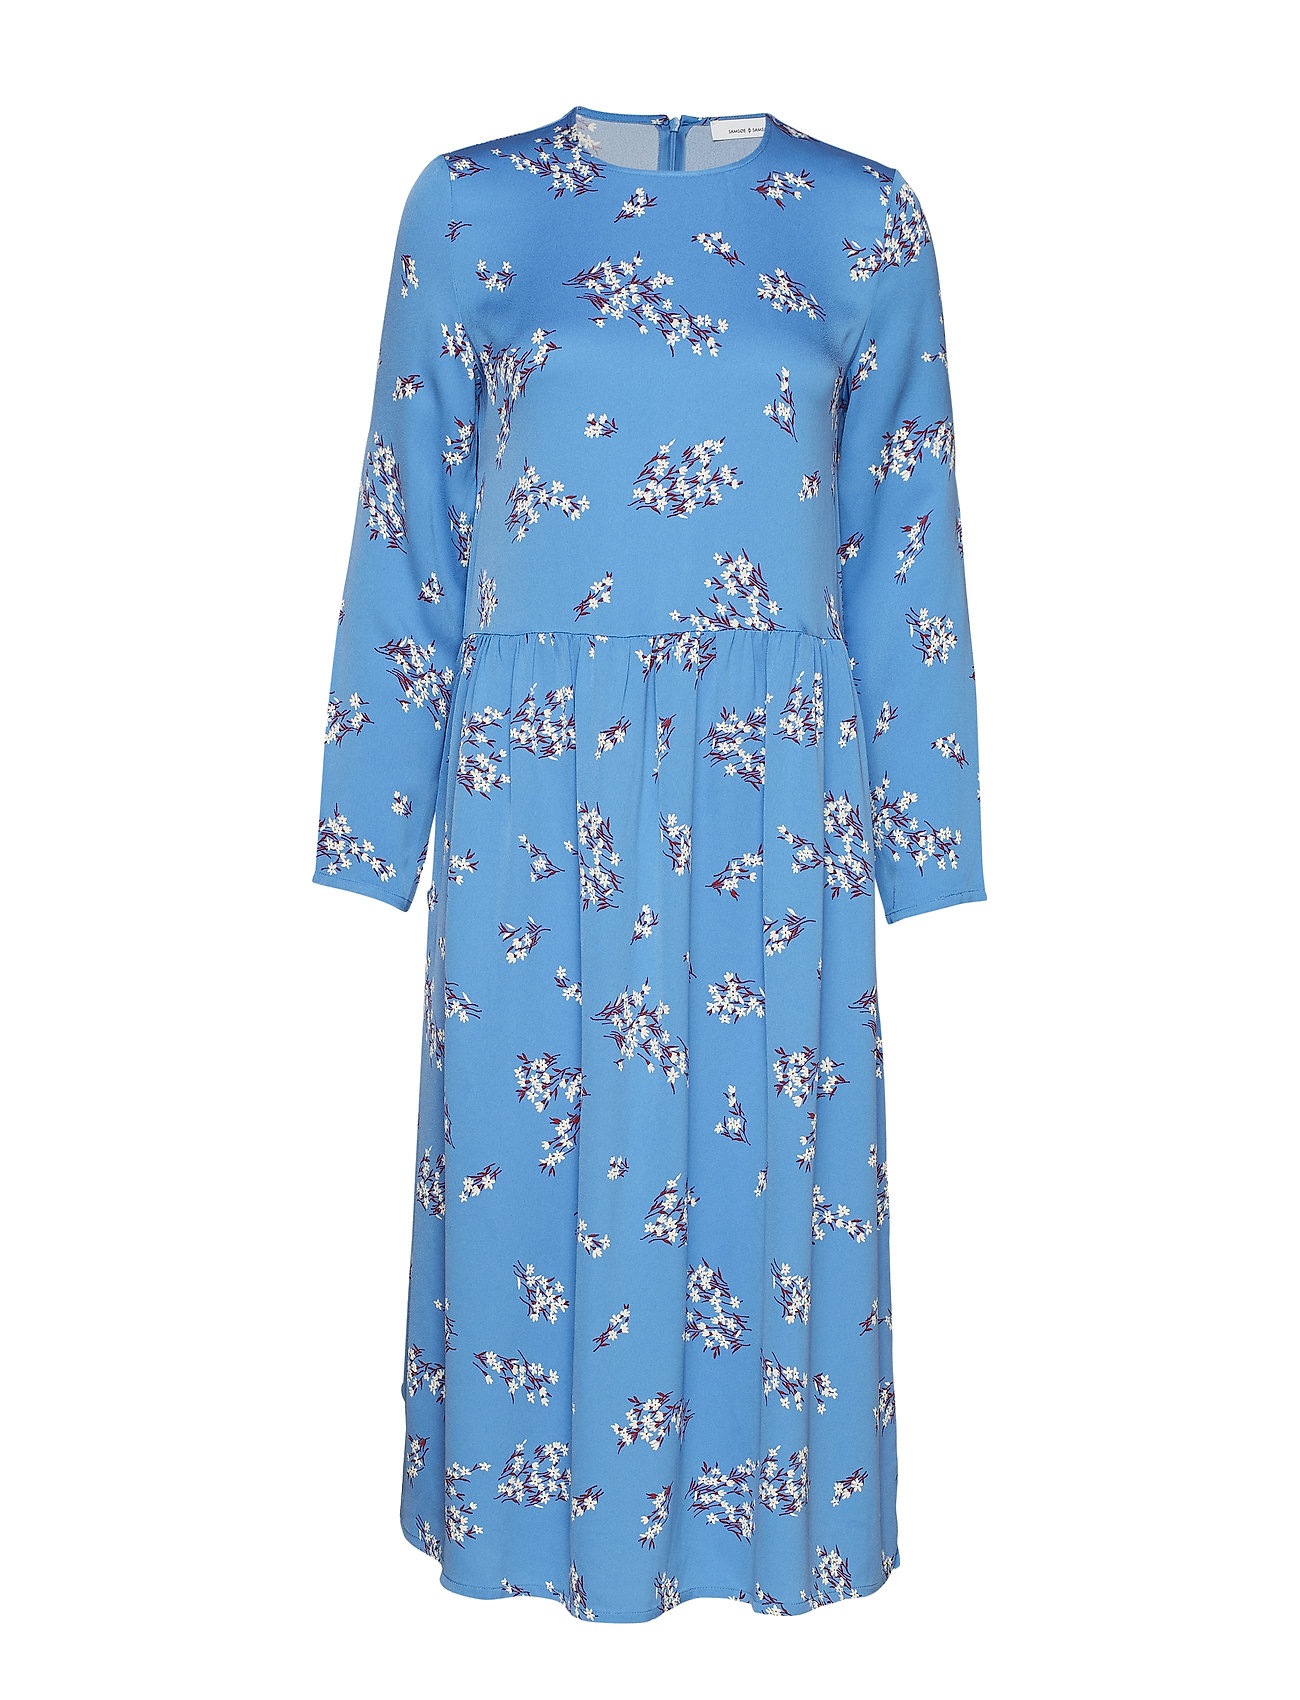 Samsøe & Samsøe Rama dress aop 8325 - BLUE BREEZE